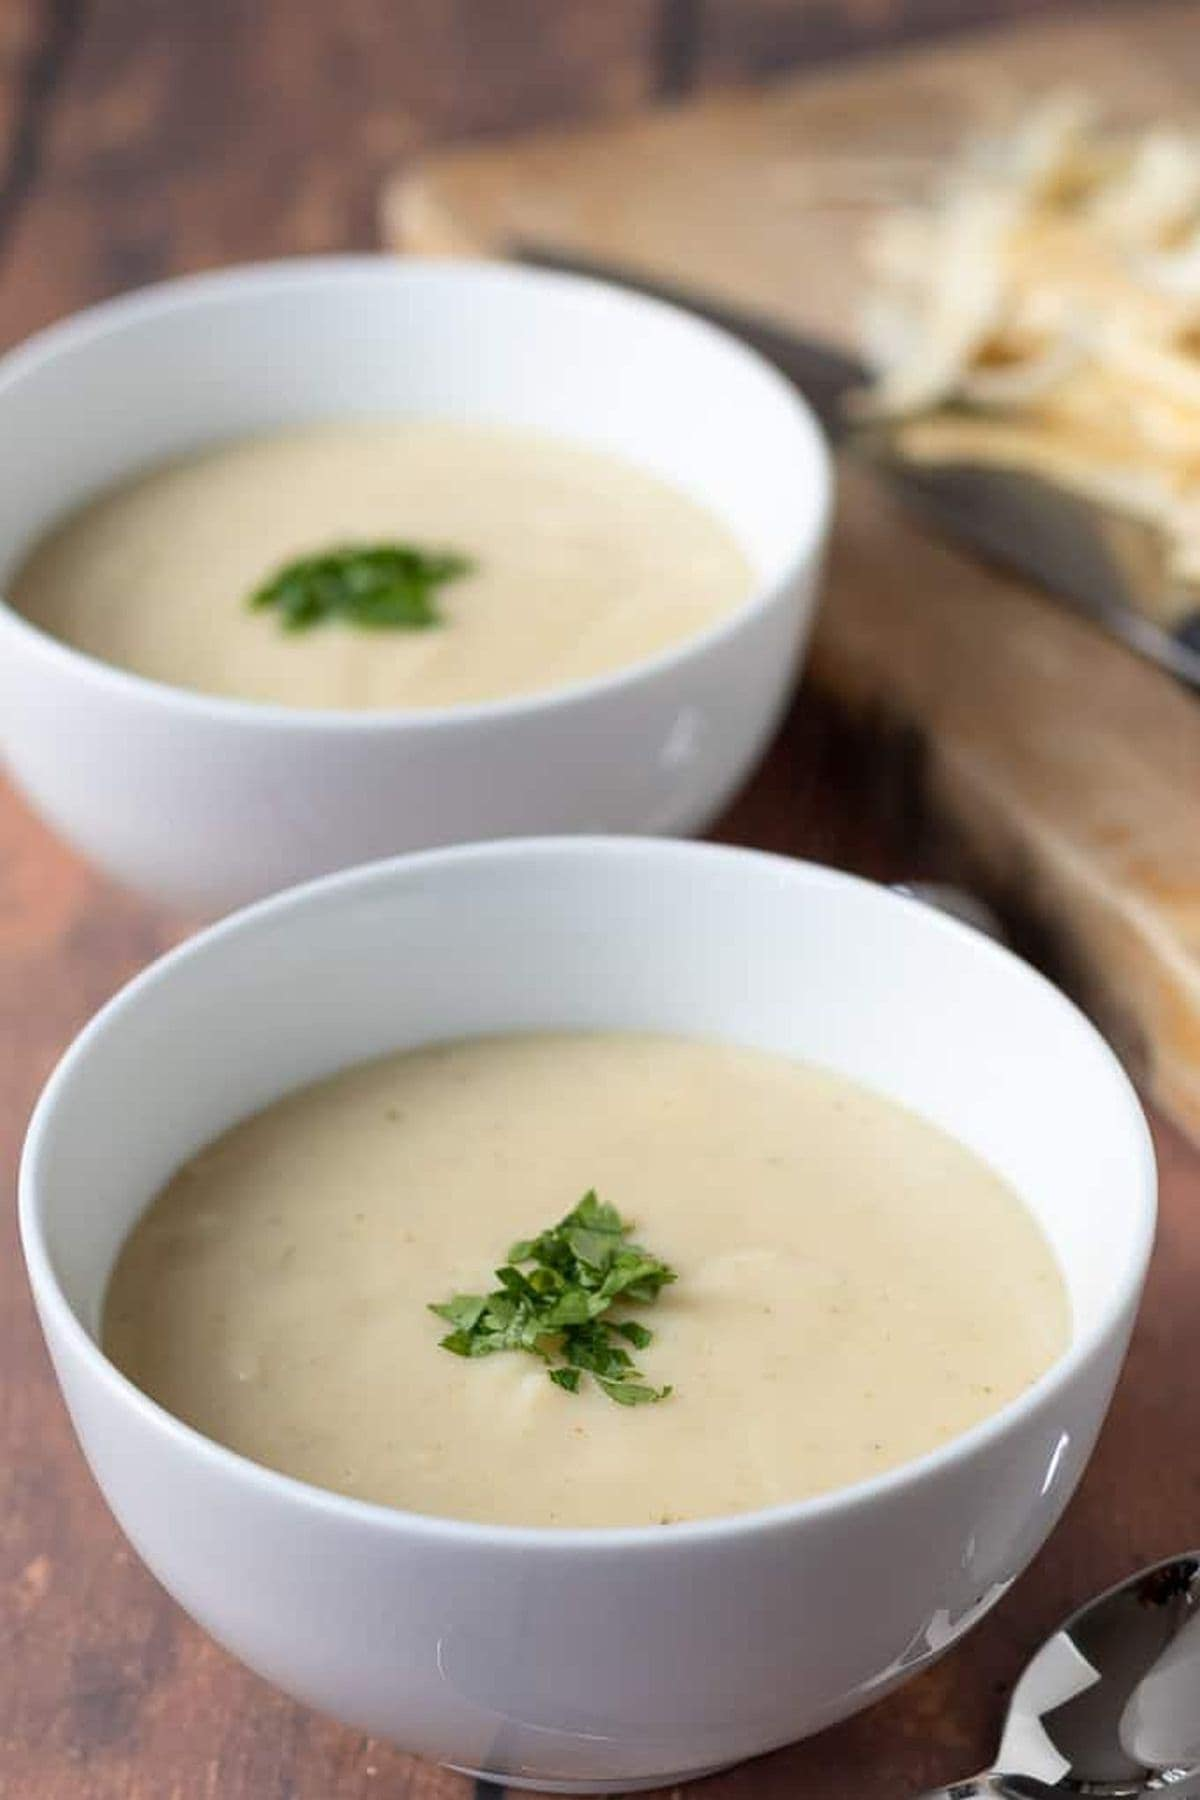 Two bowls of creamy parsnip soup, one in front of the other with a chopping board in the background.